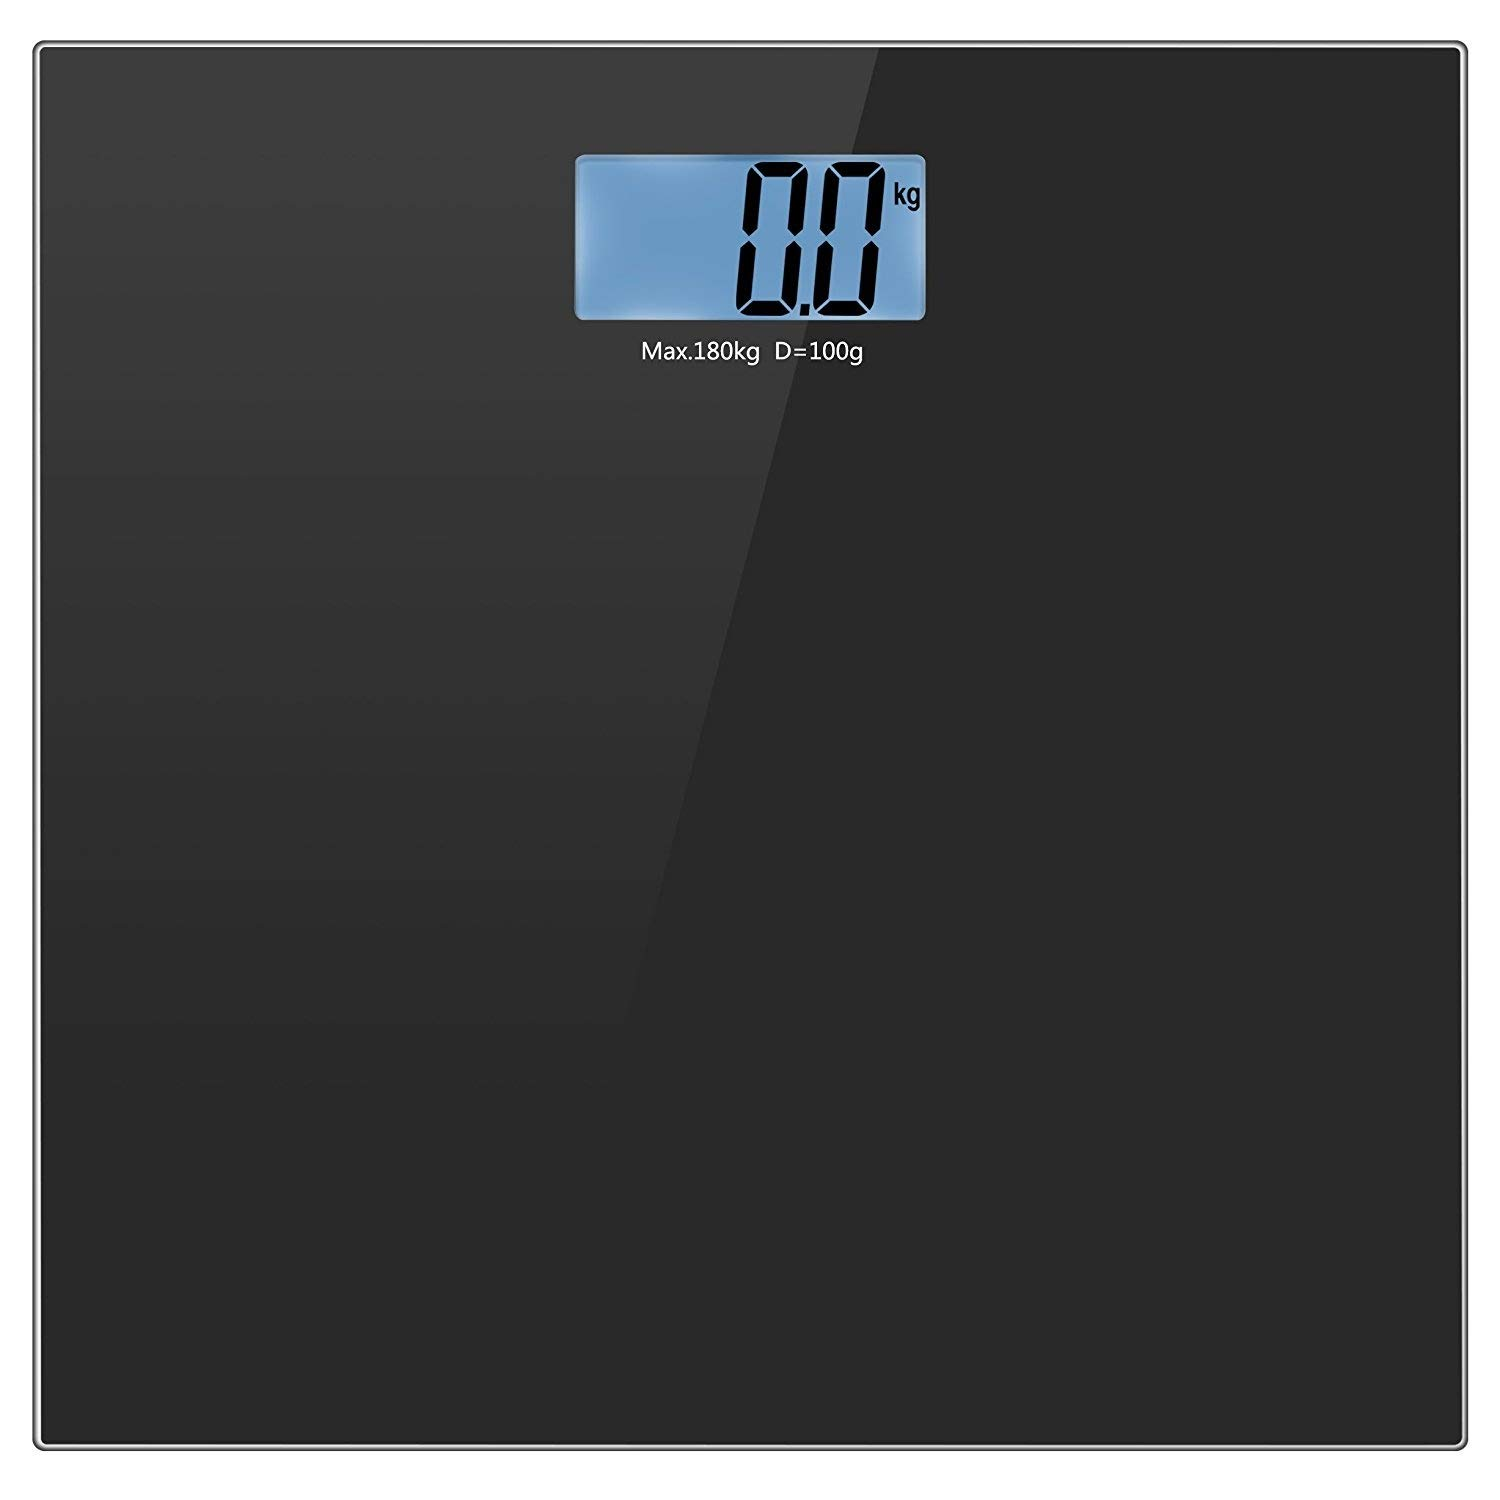 Helect Body Weight Scale, Tempered Glass Digital Bathroom Scale with Step-On Technology 400LB 180KG Black – H1010